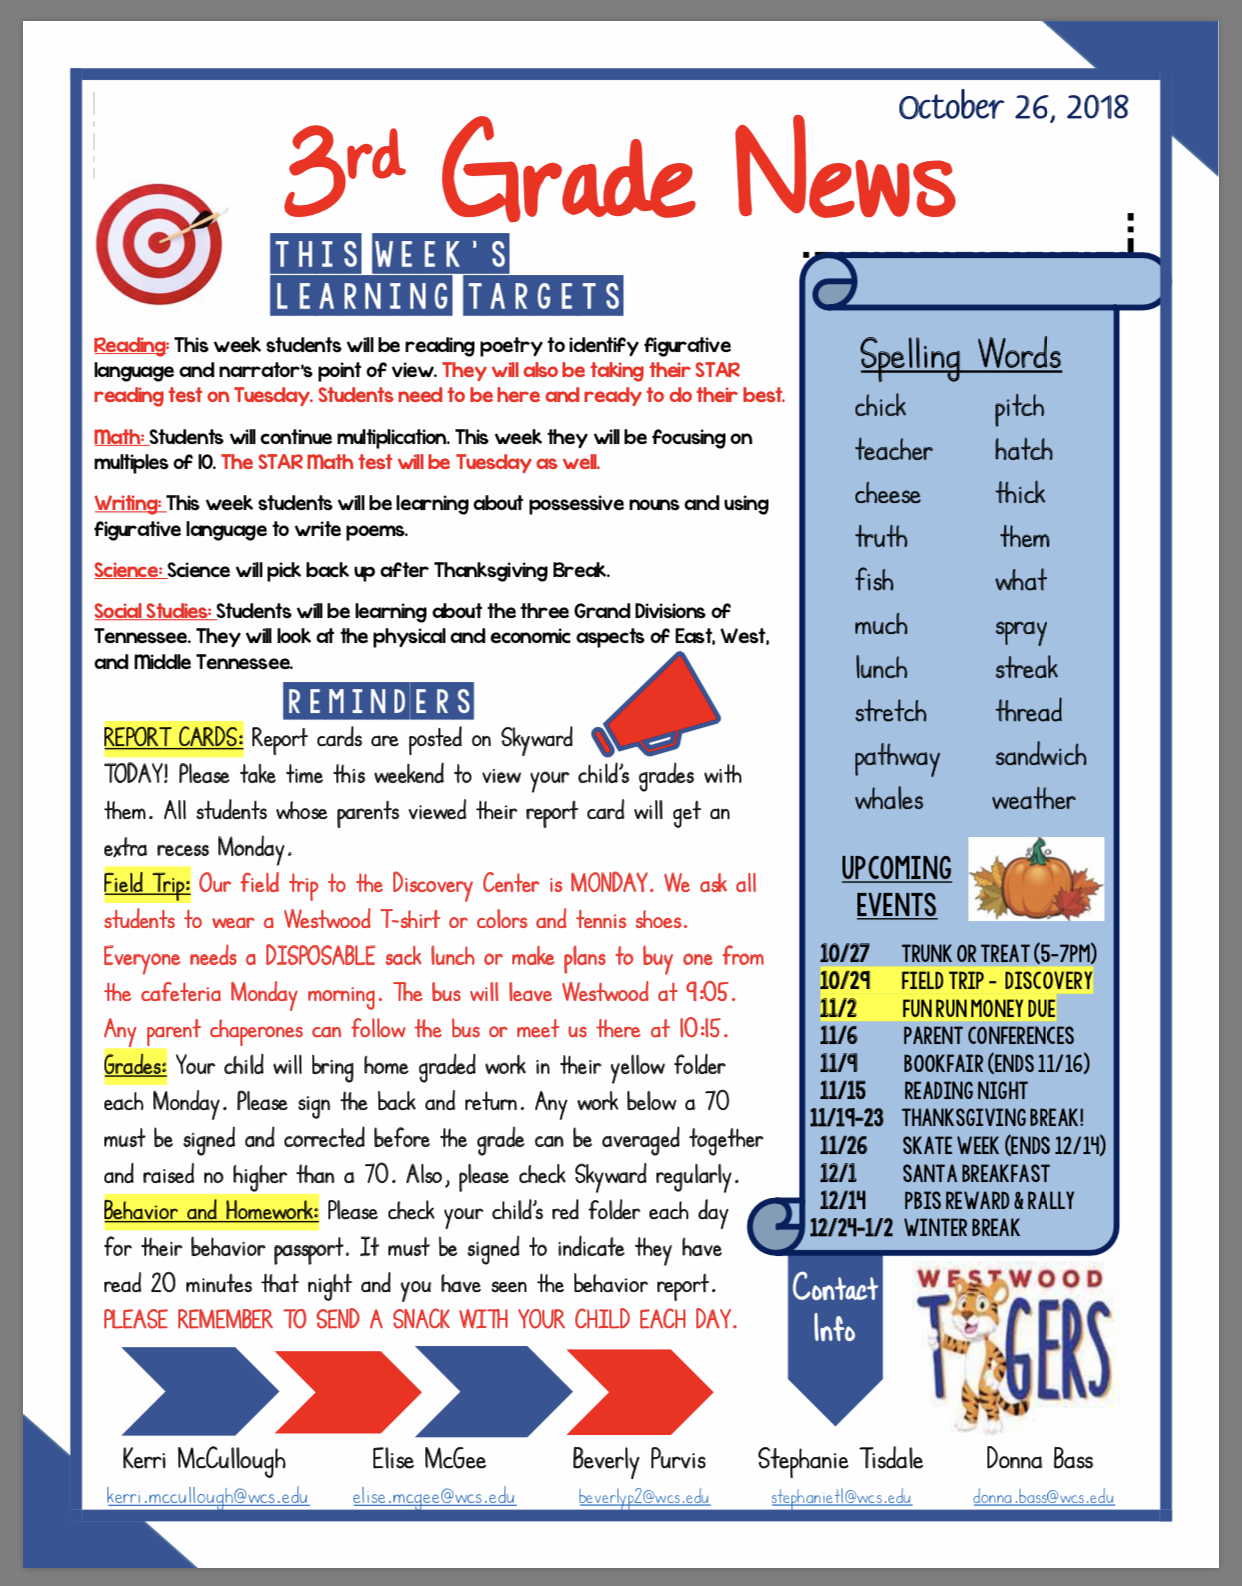 Third Grade news paper copy available in office